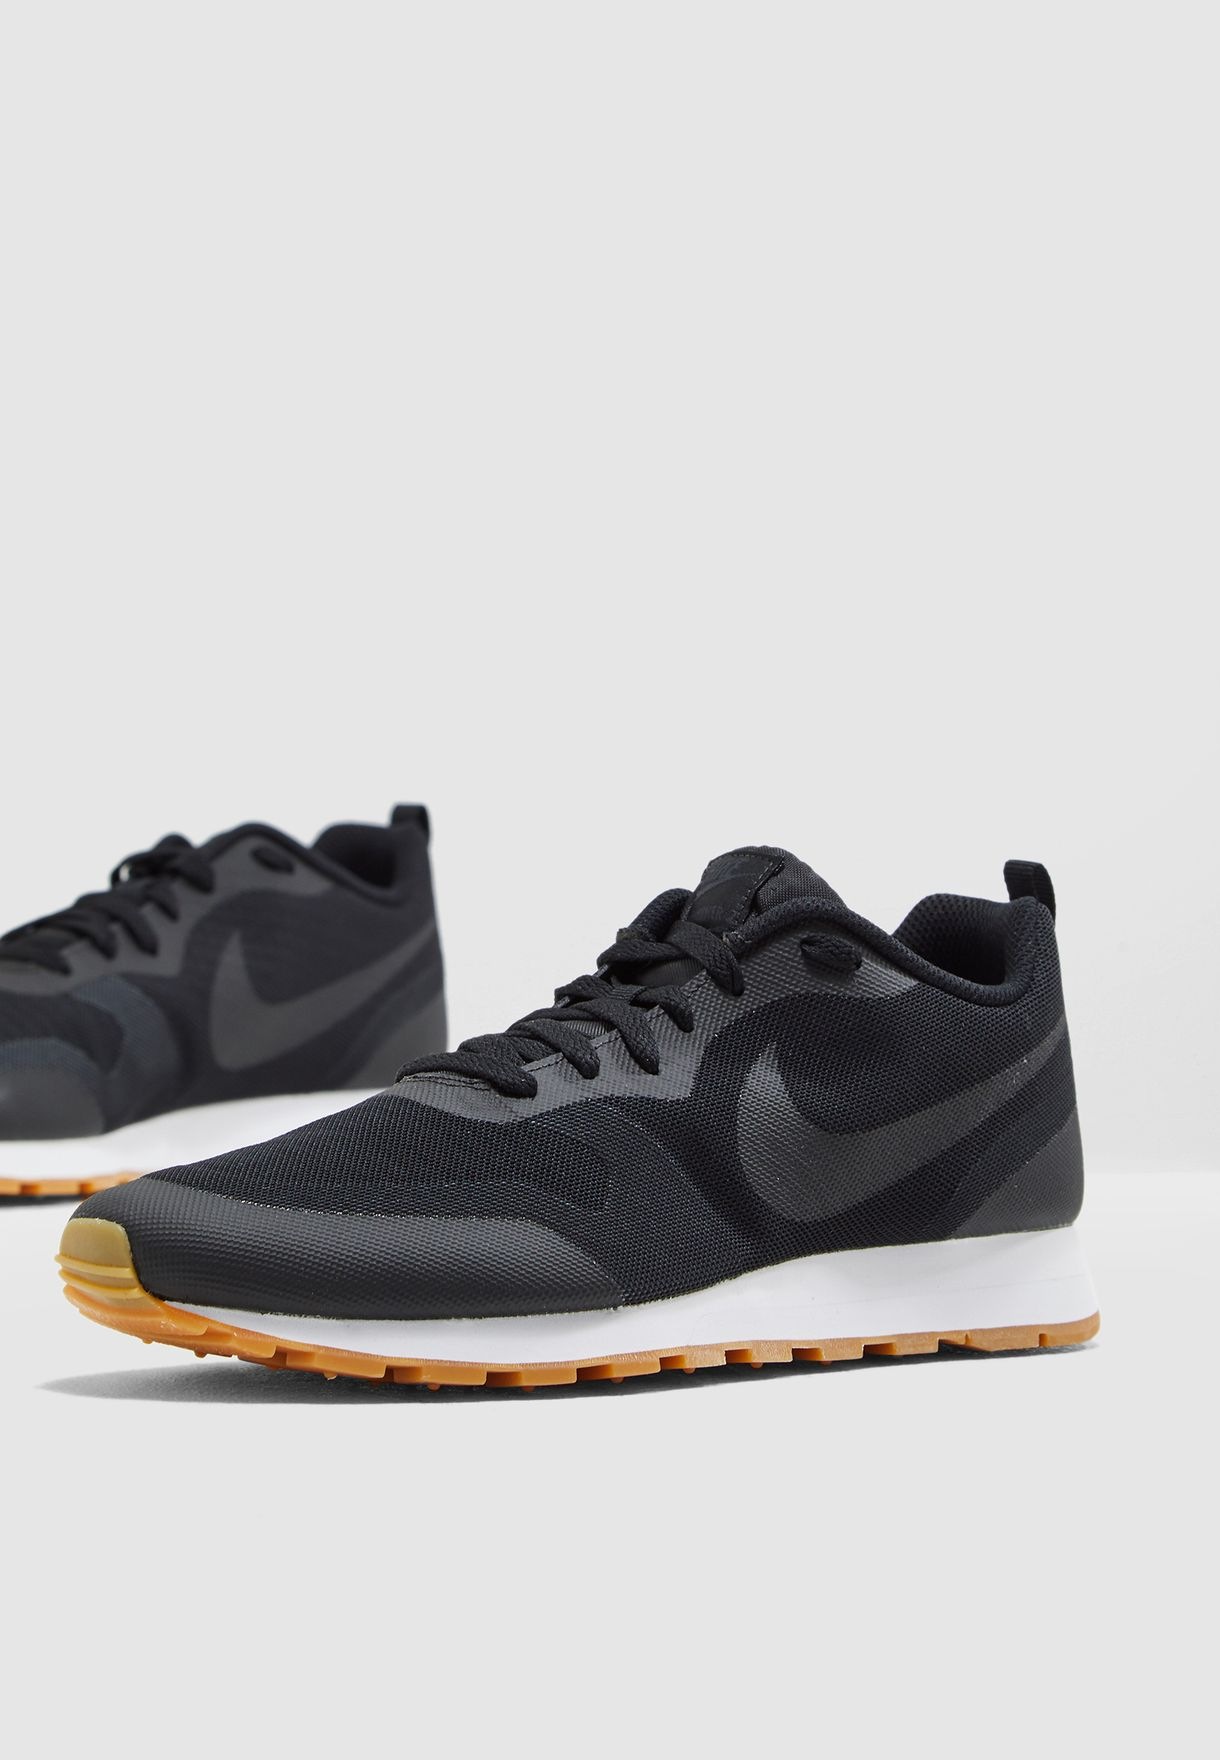 Buy Nike Black Md Runner 2 19 for Men in Mena, Worldwide, Globally